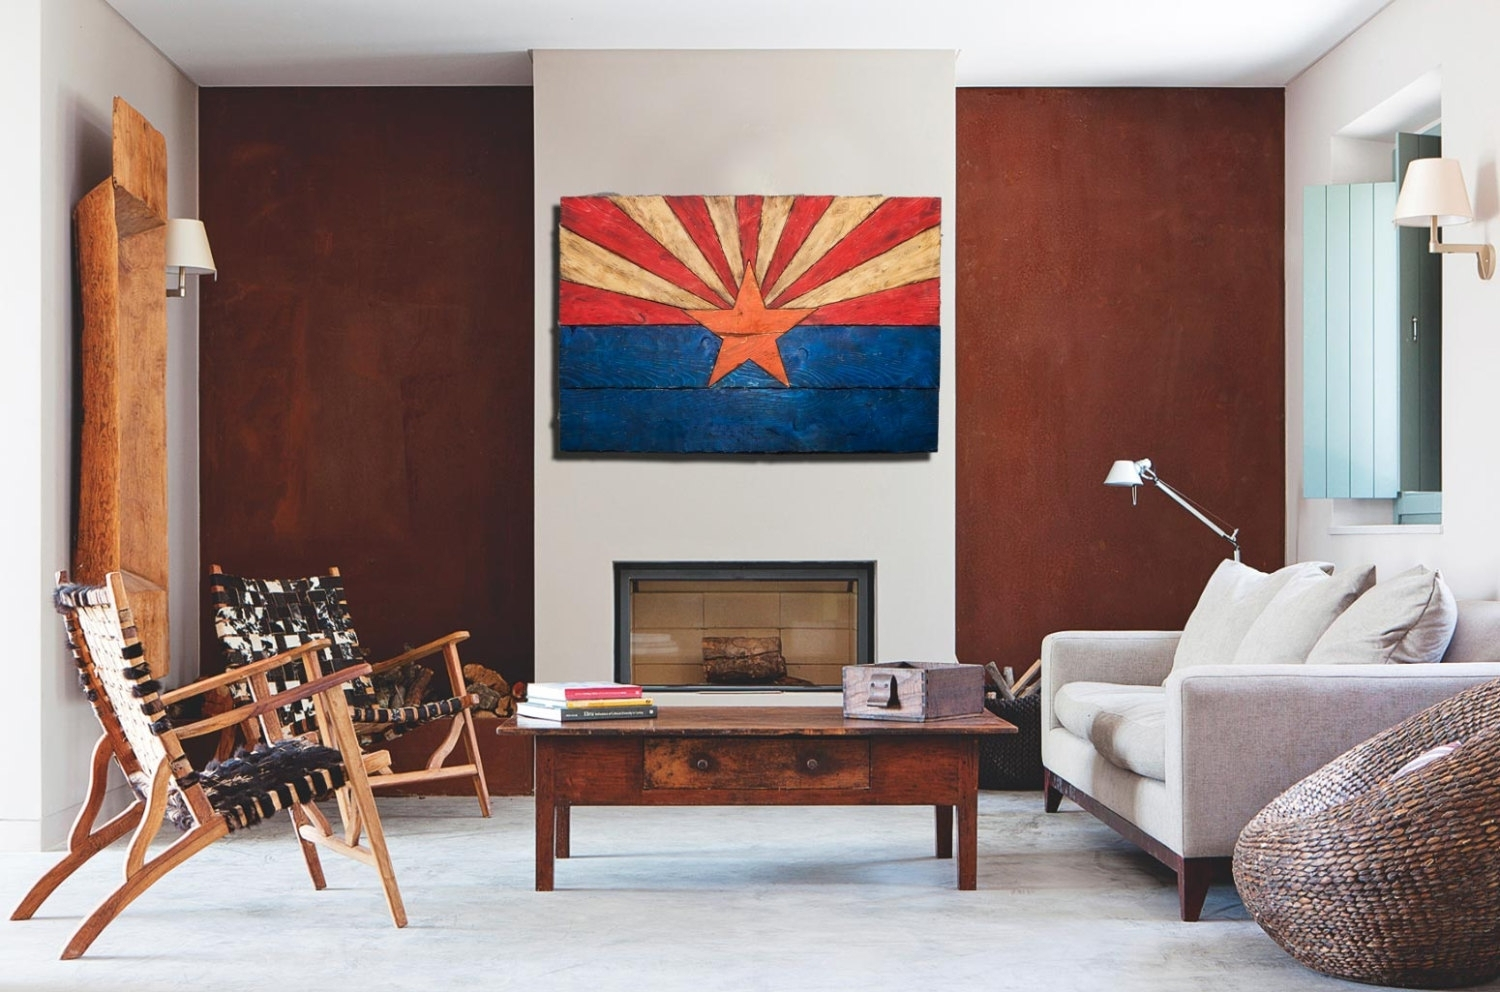 Arizona Flag, Handmade, Distressed Painted Wood, Vintage, Art Intended For Most Popular Arizona Wall Art (View 4 of 20)